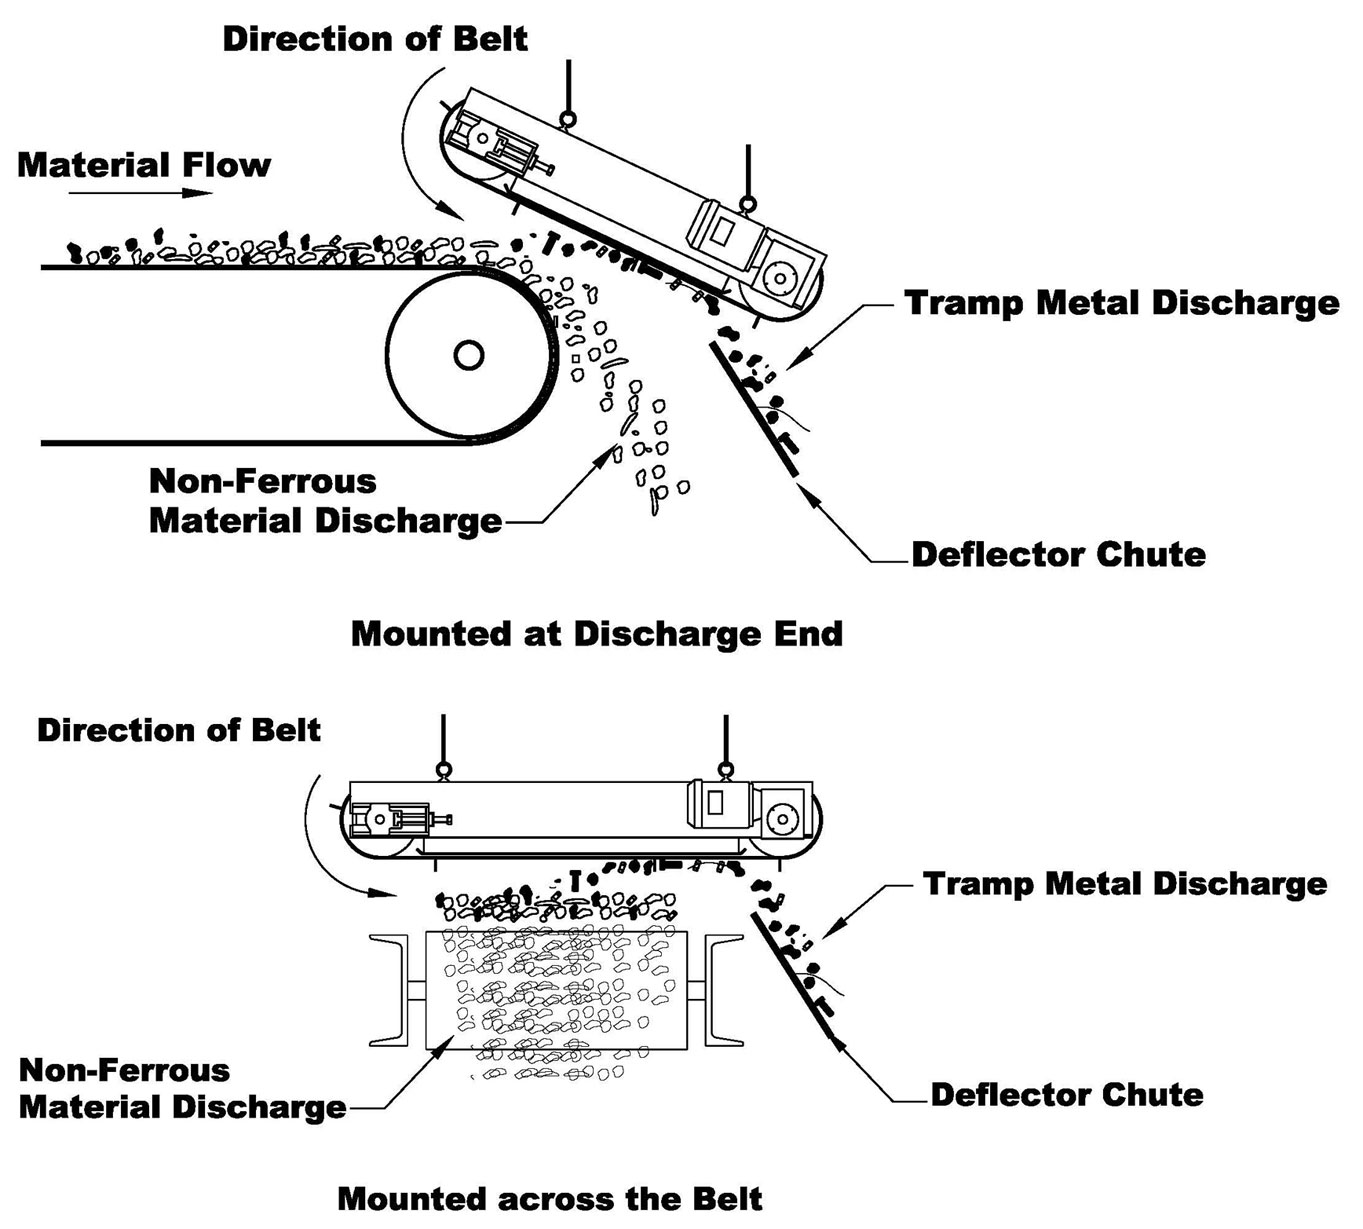 Image of Suspended Electromagnet Positions